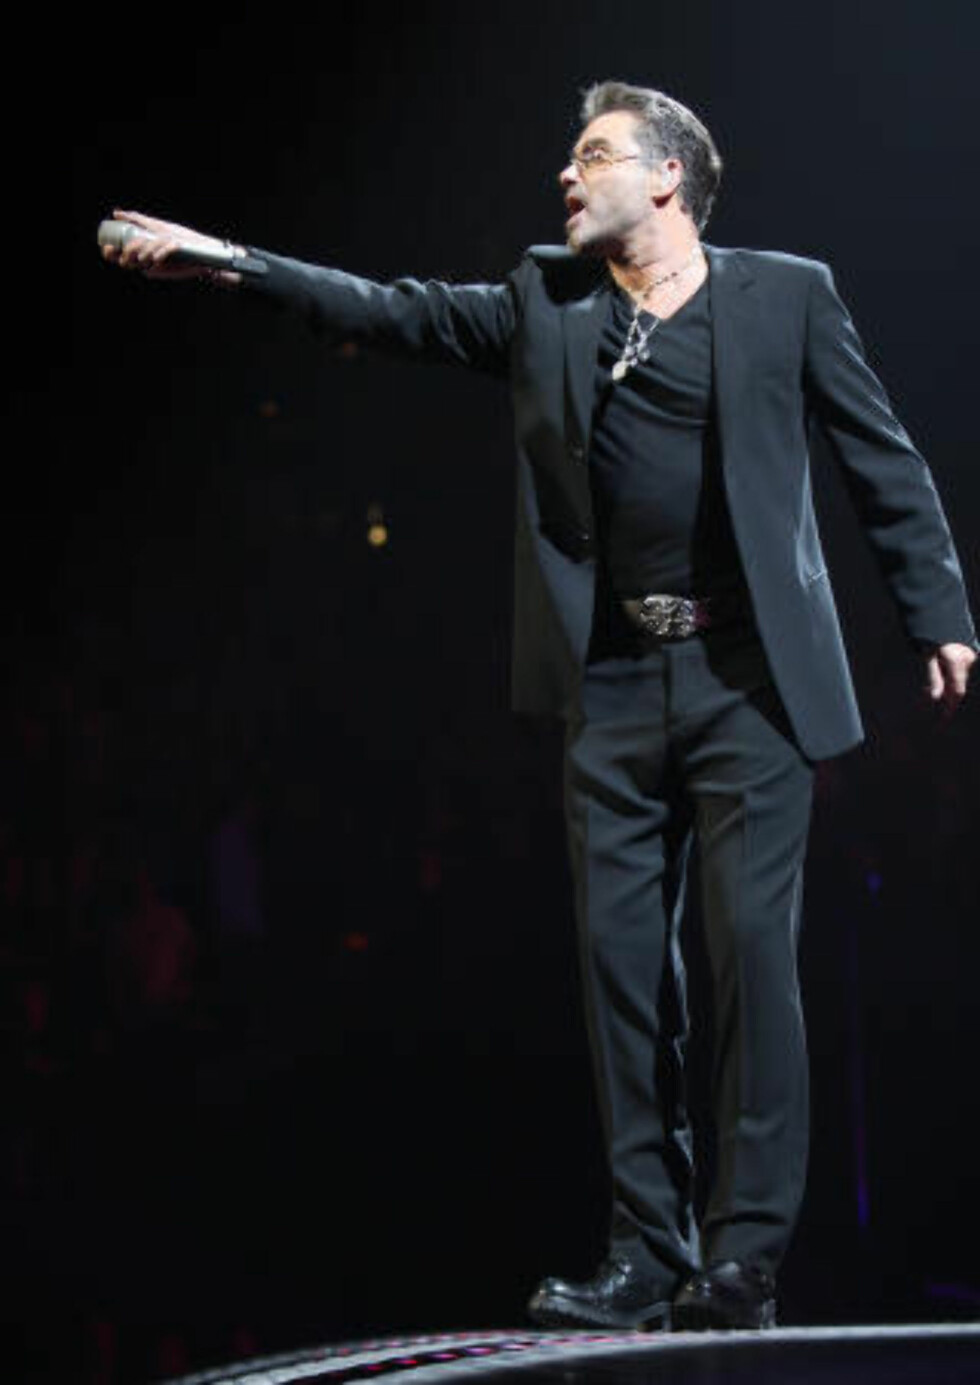 WHAM: Her representert ved George Michael. Foto: Stella Pictures